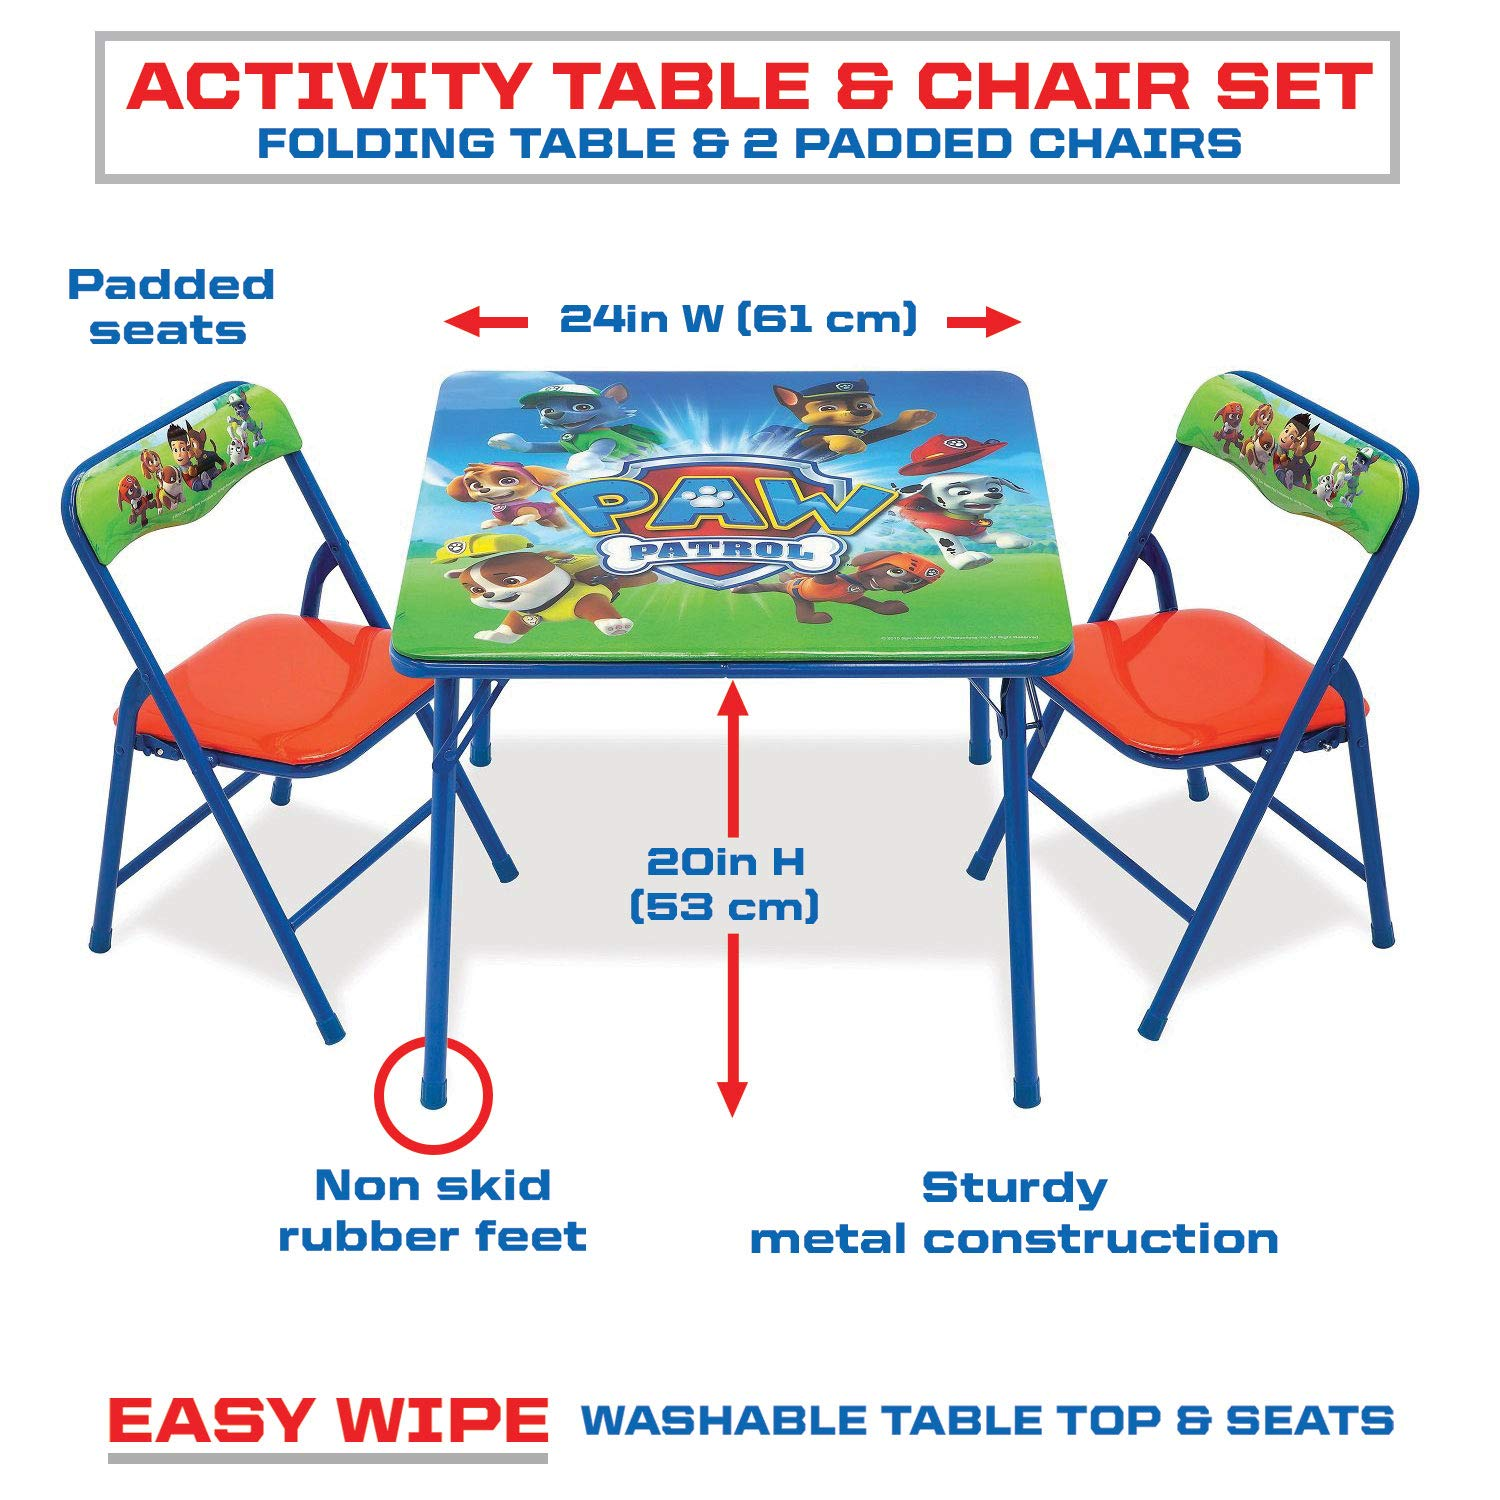 Wondrous Paw Patrol Activity Table Sets Folding Childrens Table Chair Set Includes 2 Kid Chairs With Non Skid Rubber Feet Padded Seats Sturdy Metal Creativecarmelina Interior Chair Design Creativecarmelinacom